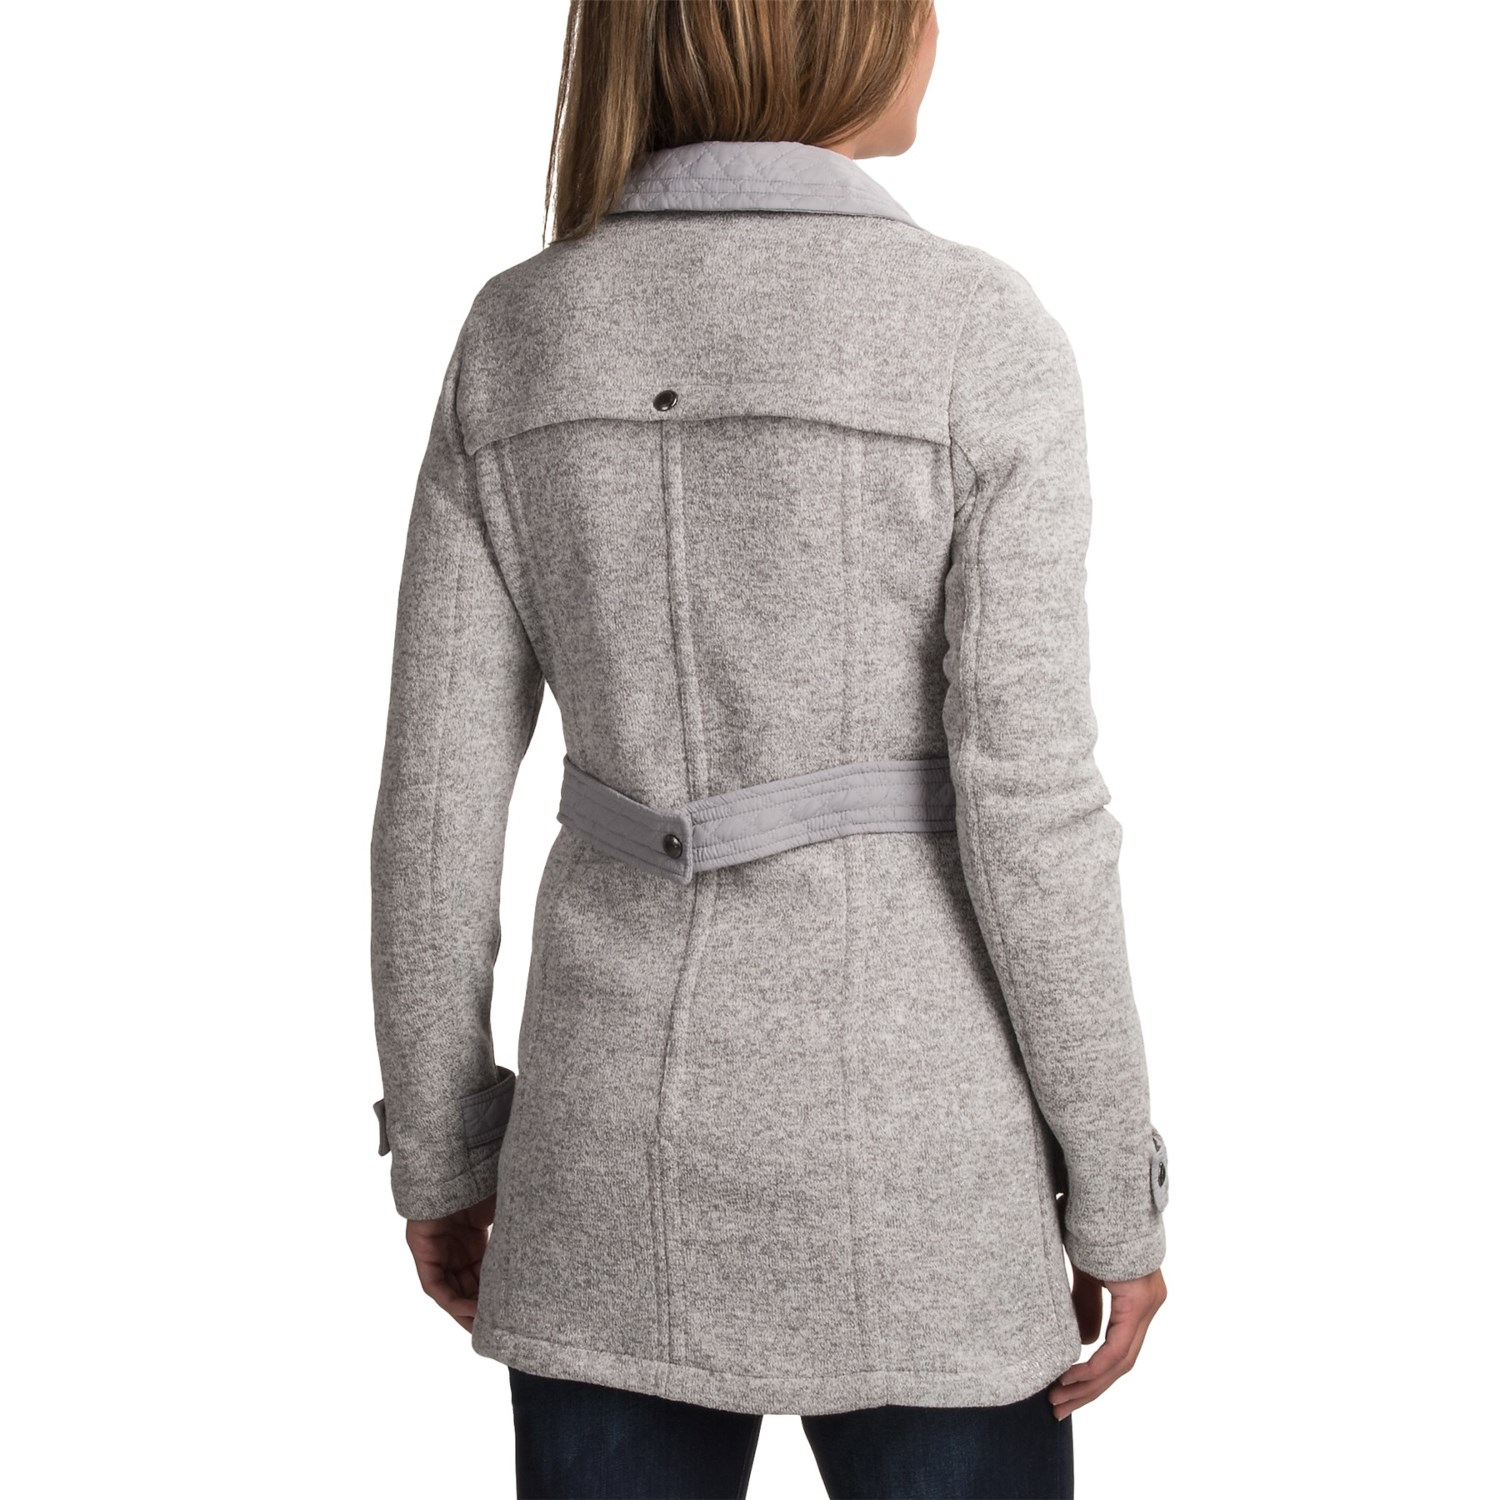 Weatherproof Full-Length Sweater Jacket (For Women) - Save 61%